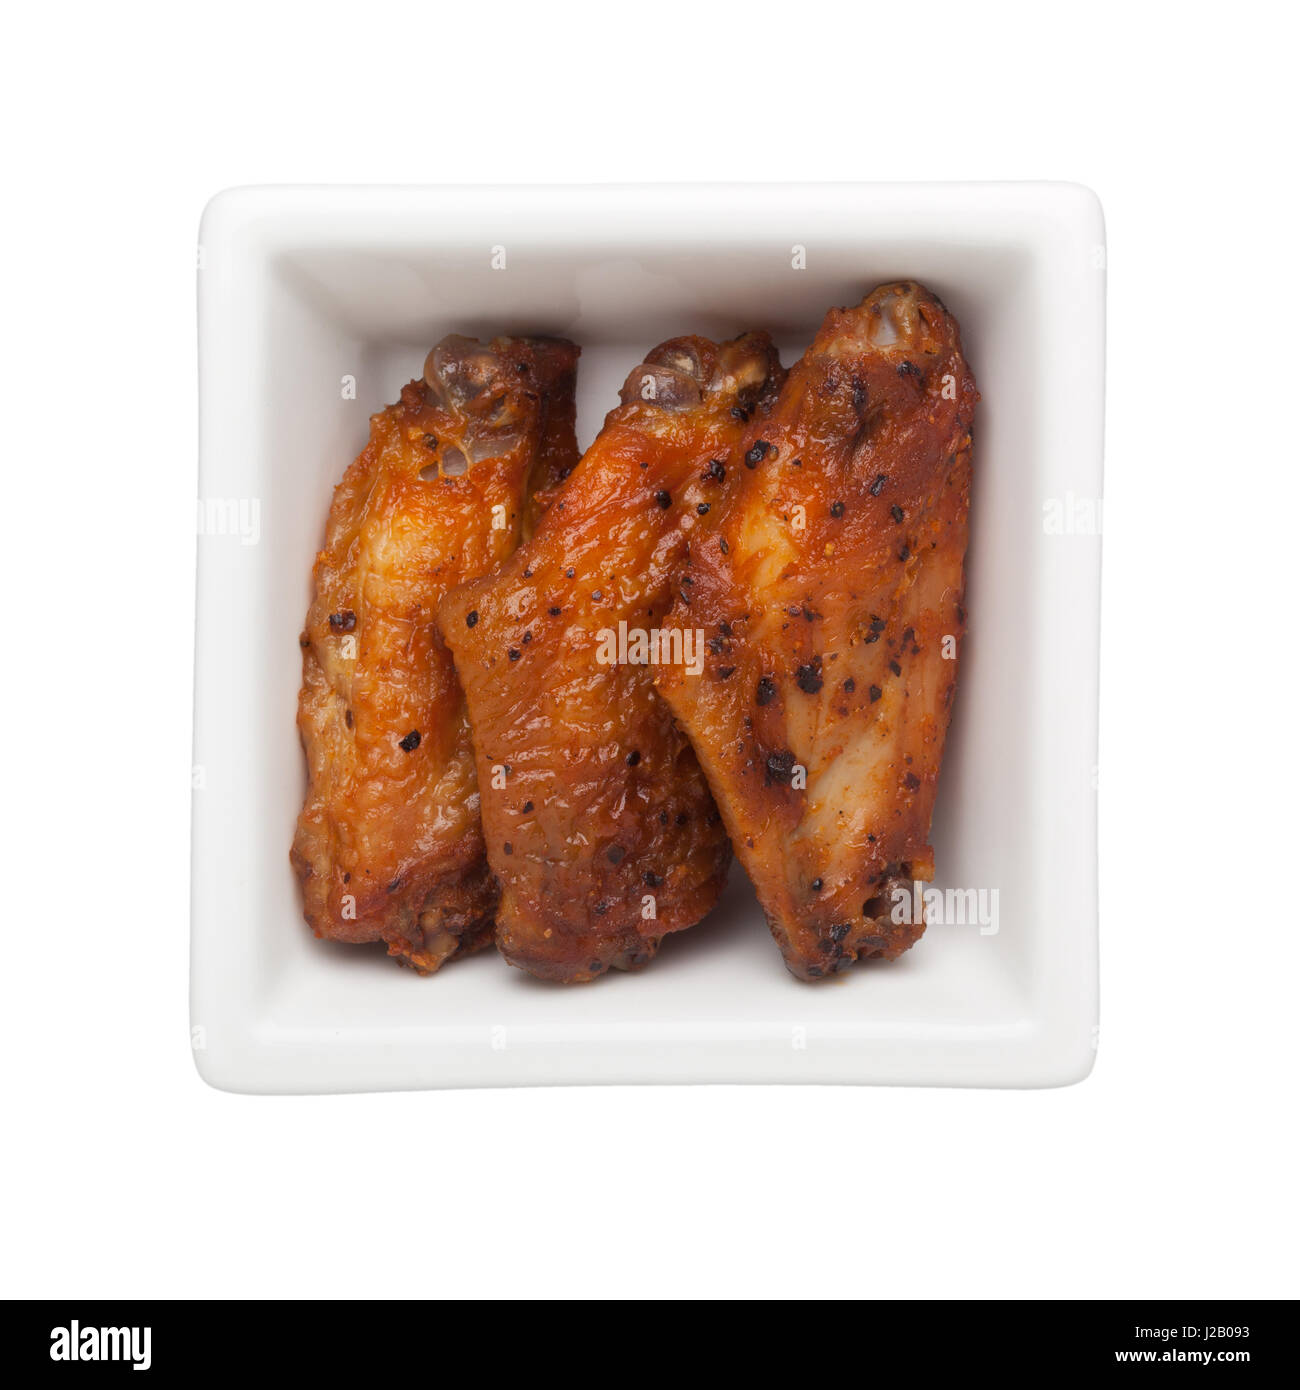 Fried chicken winglets in a square bowl isolated on white background - Stock Image